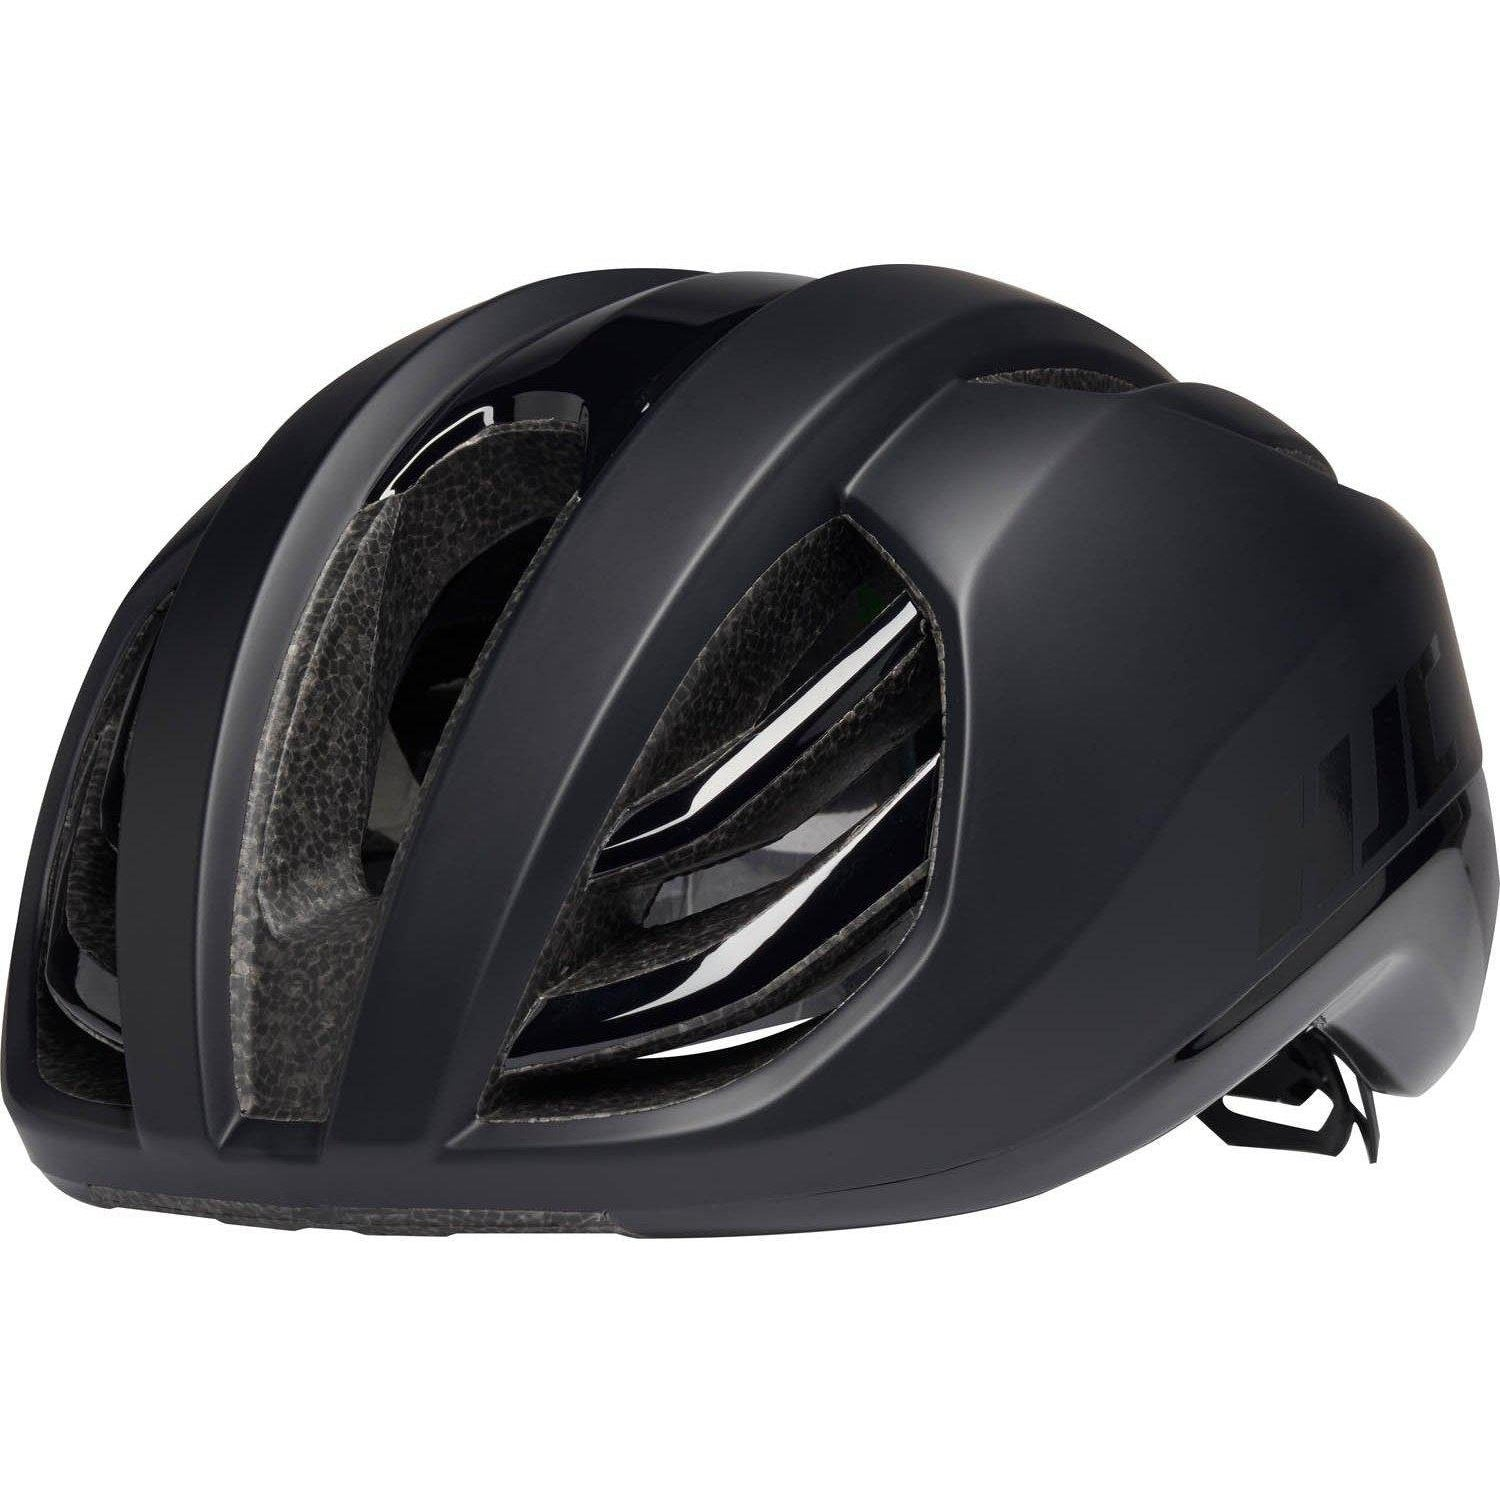 HJC-HJC Atara Road Cycling Helmet-S-Black-HJC81183101-saddleback-elite-performance-cycling